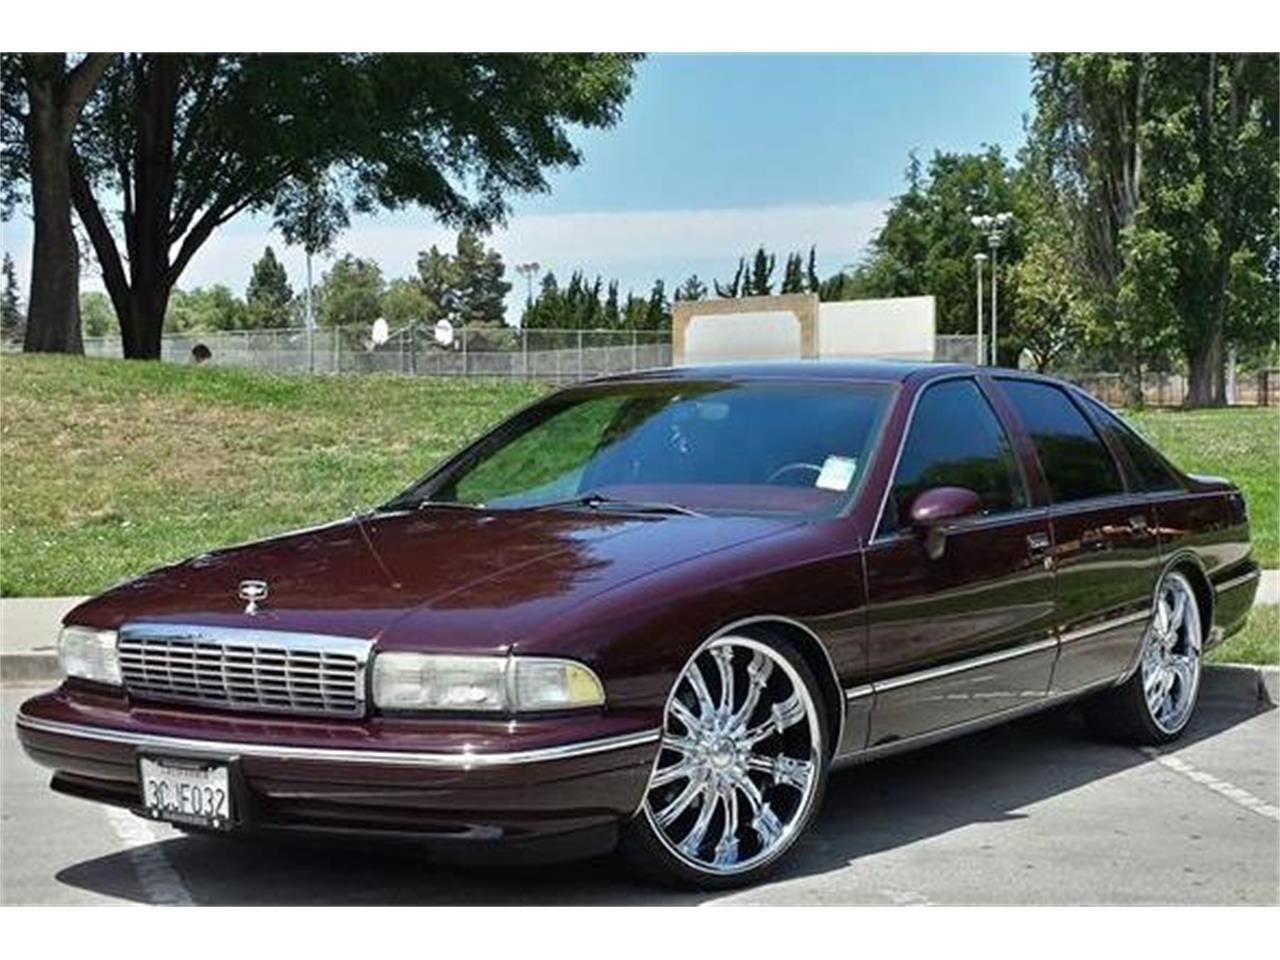 C A Ee Ccd B C besides Fb A A Ec Bdf D D D moreover Af E A Bc D A B besides Capricerdtestp furthermore A C A D E A Cbcc D Fefe. on custom chevy caprice classics cars